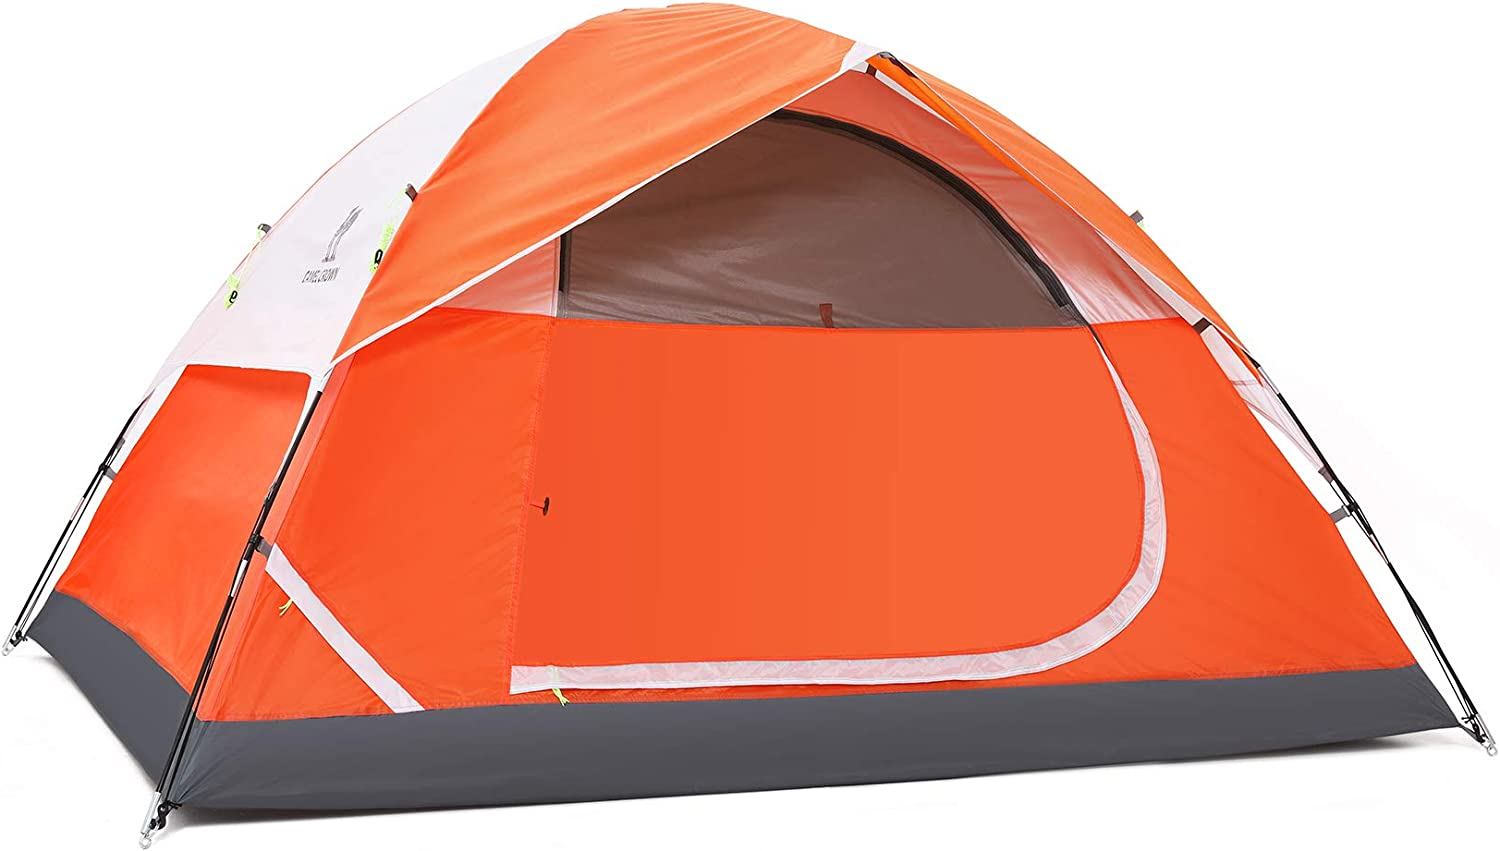 CAMEL CROWN 3-4 Person Camping with Dome Tent Automatic Waterpro Product New Shipping Free